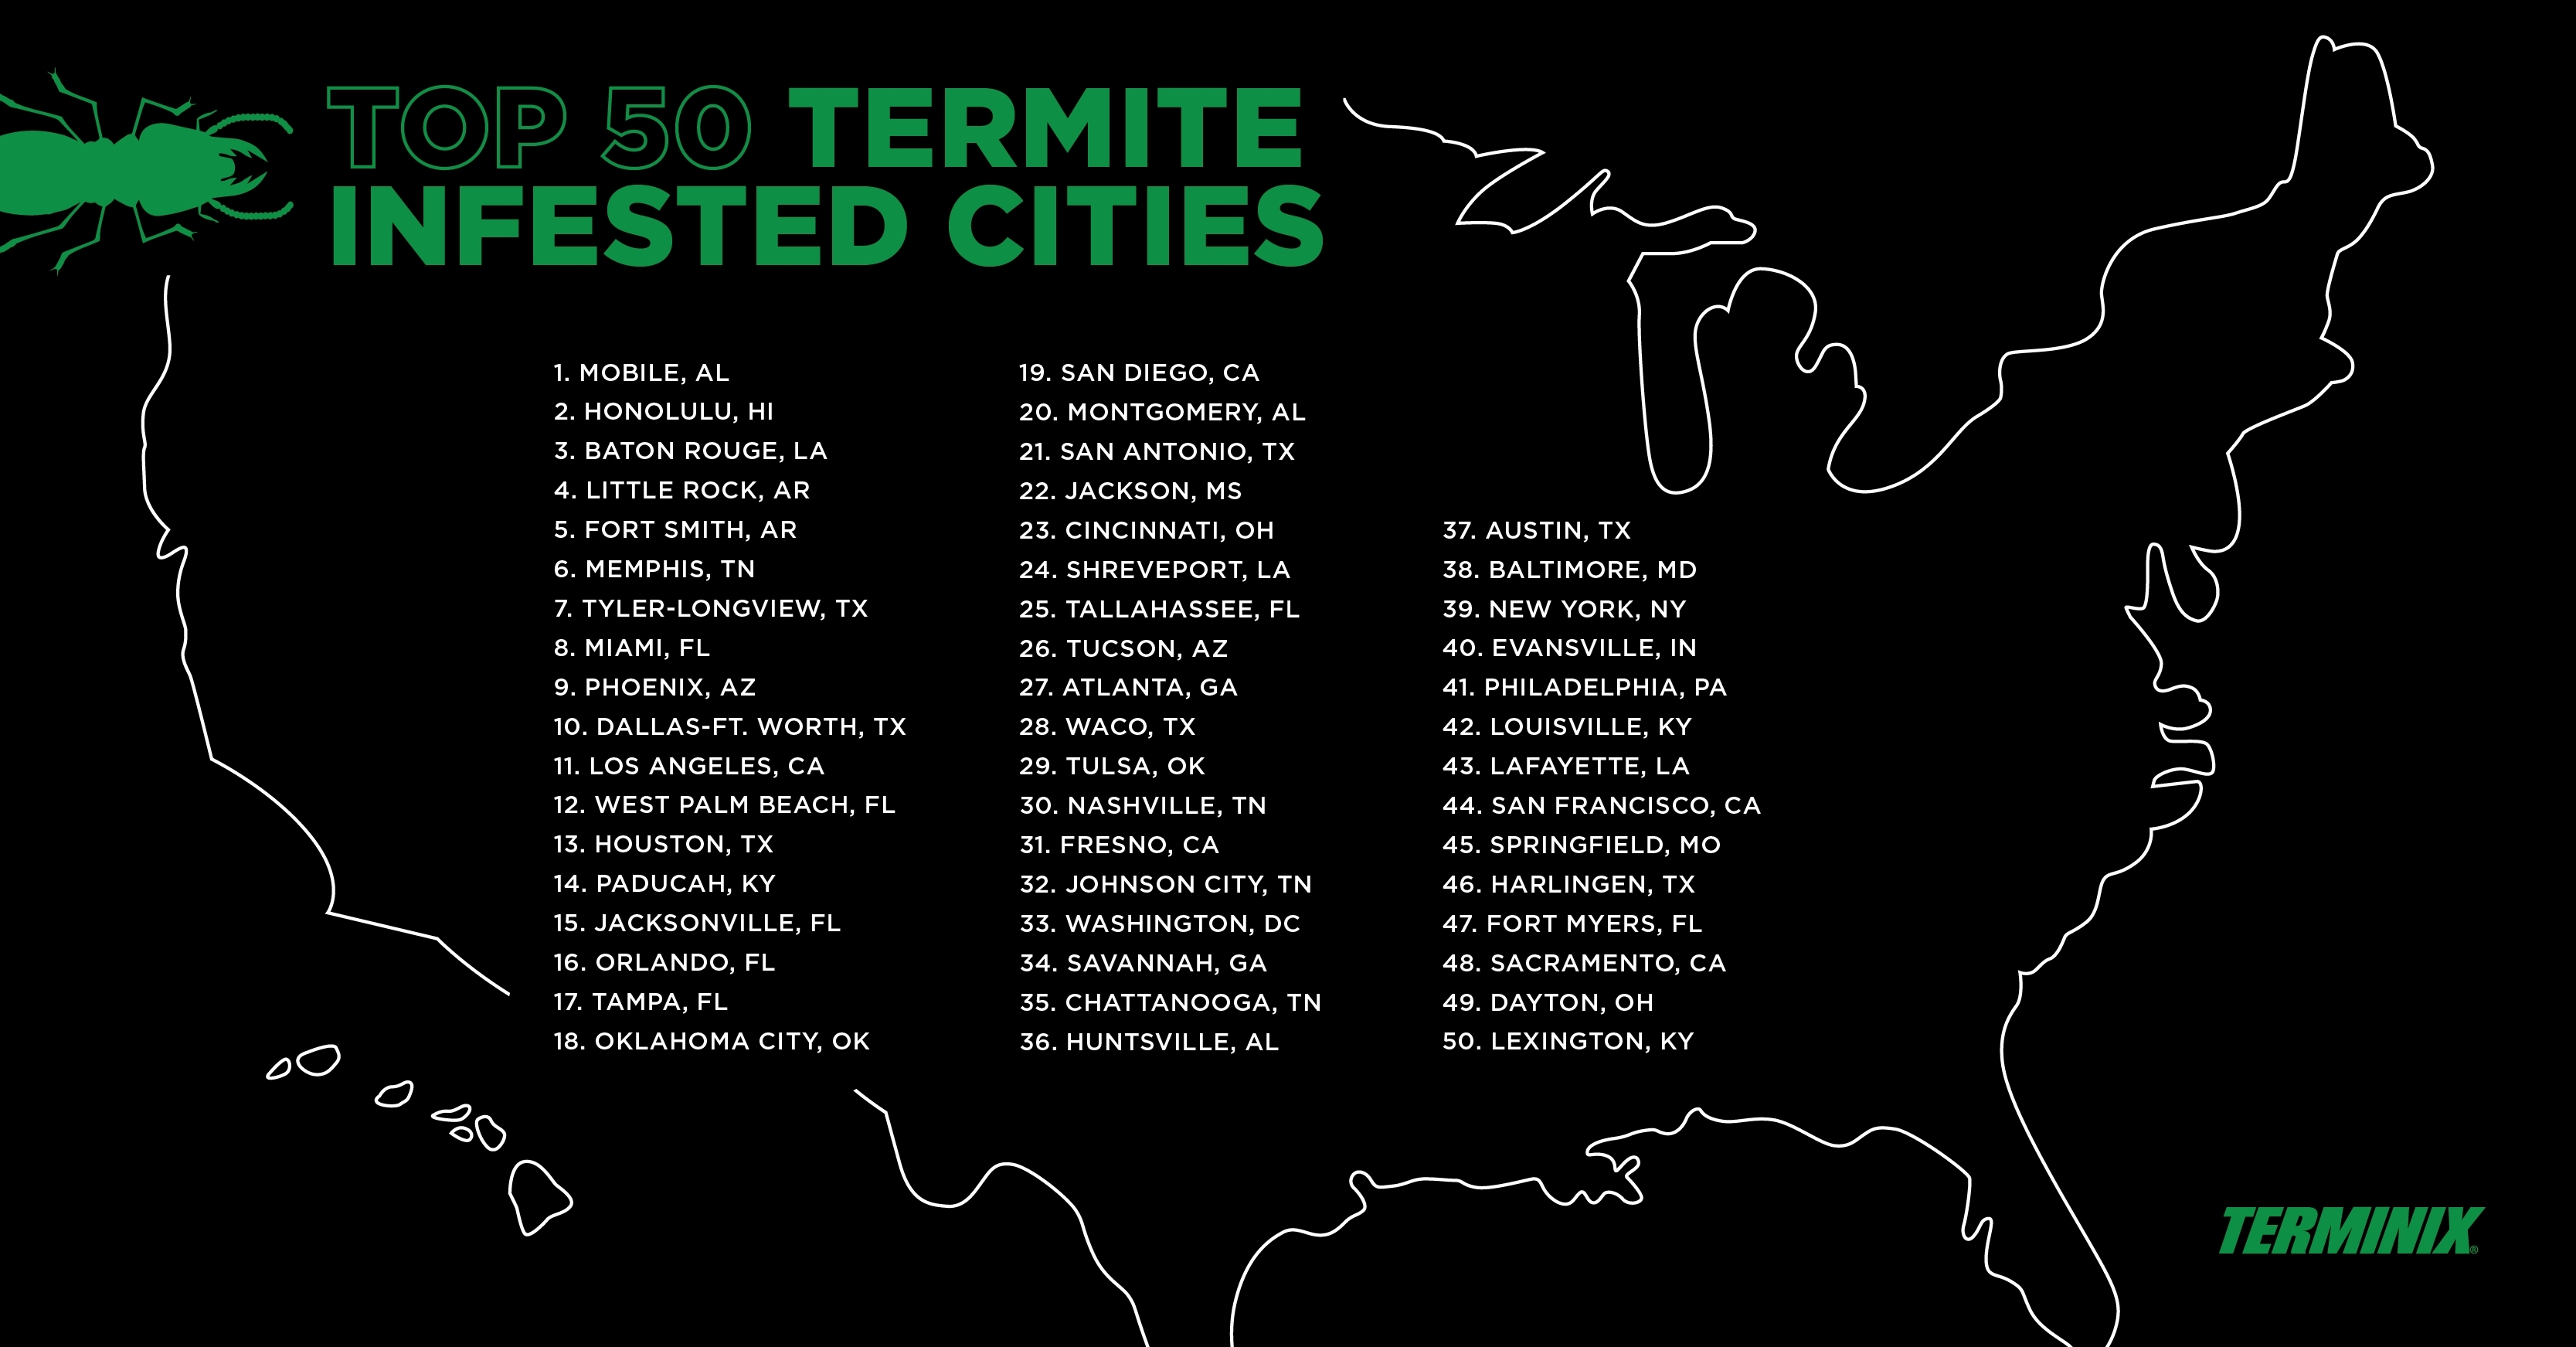 Terminix Announces Its List Of The Top 50 Most Termite Infested Cities Business Wire